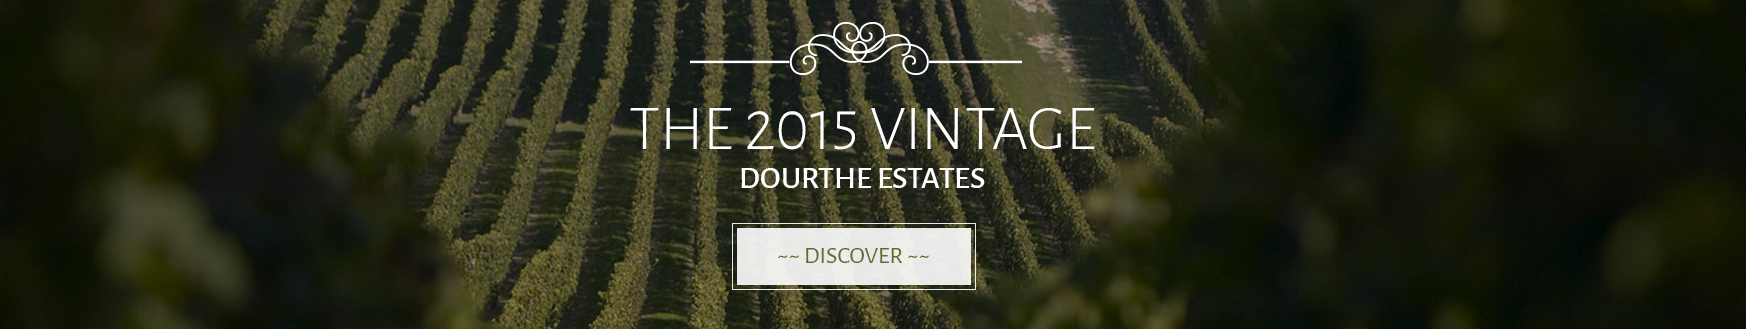 Discover the 2015 Vintages